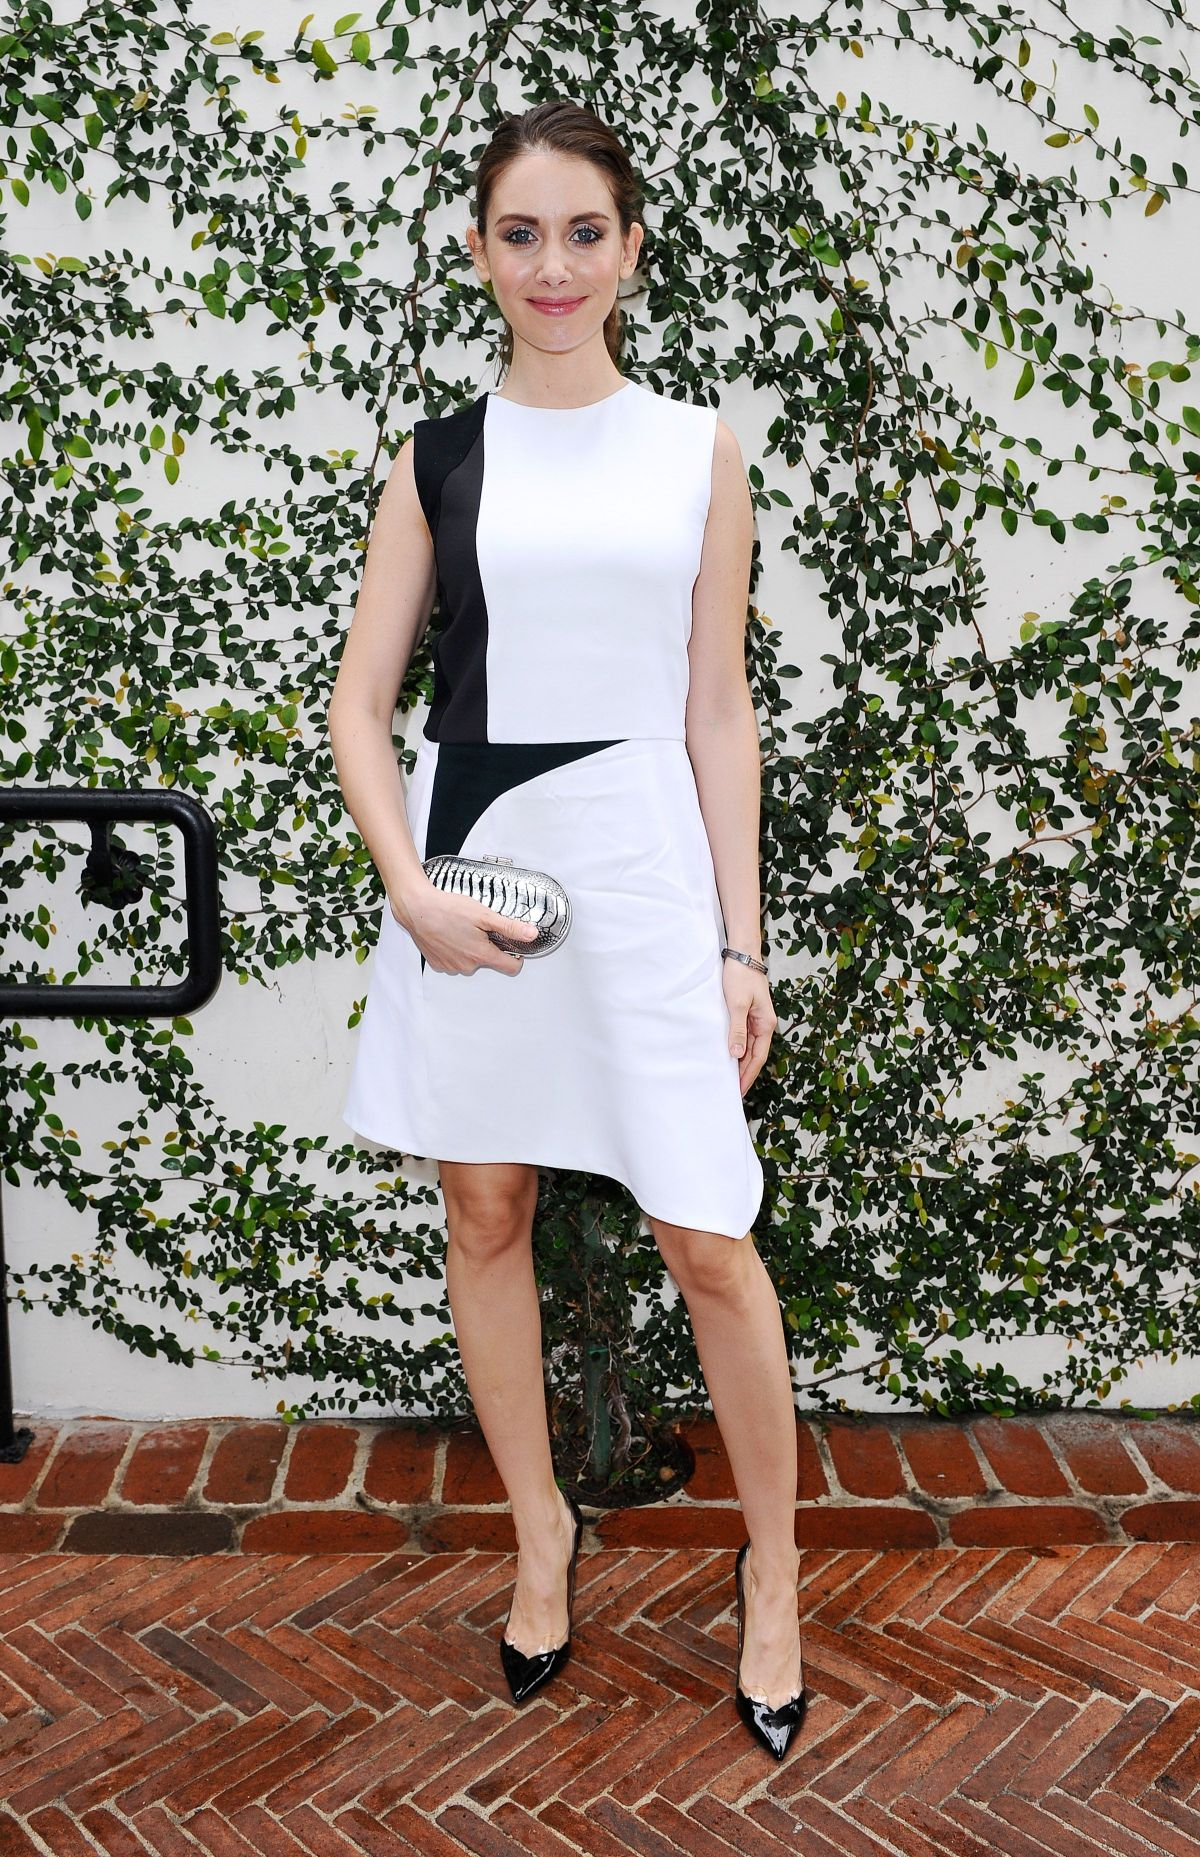 ALISON BRIE at W Magazine Luncheon in Los Angeles